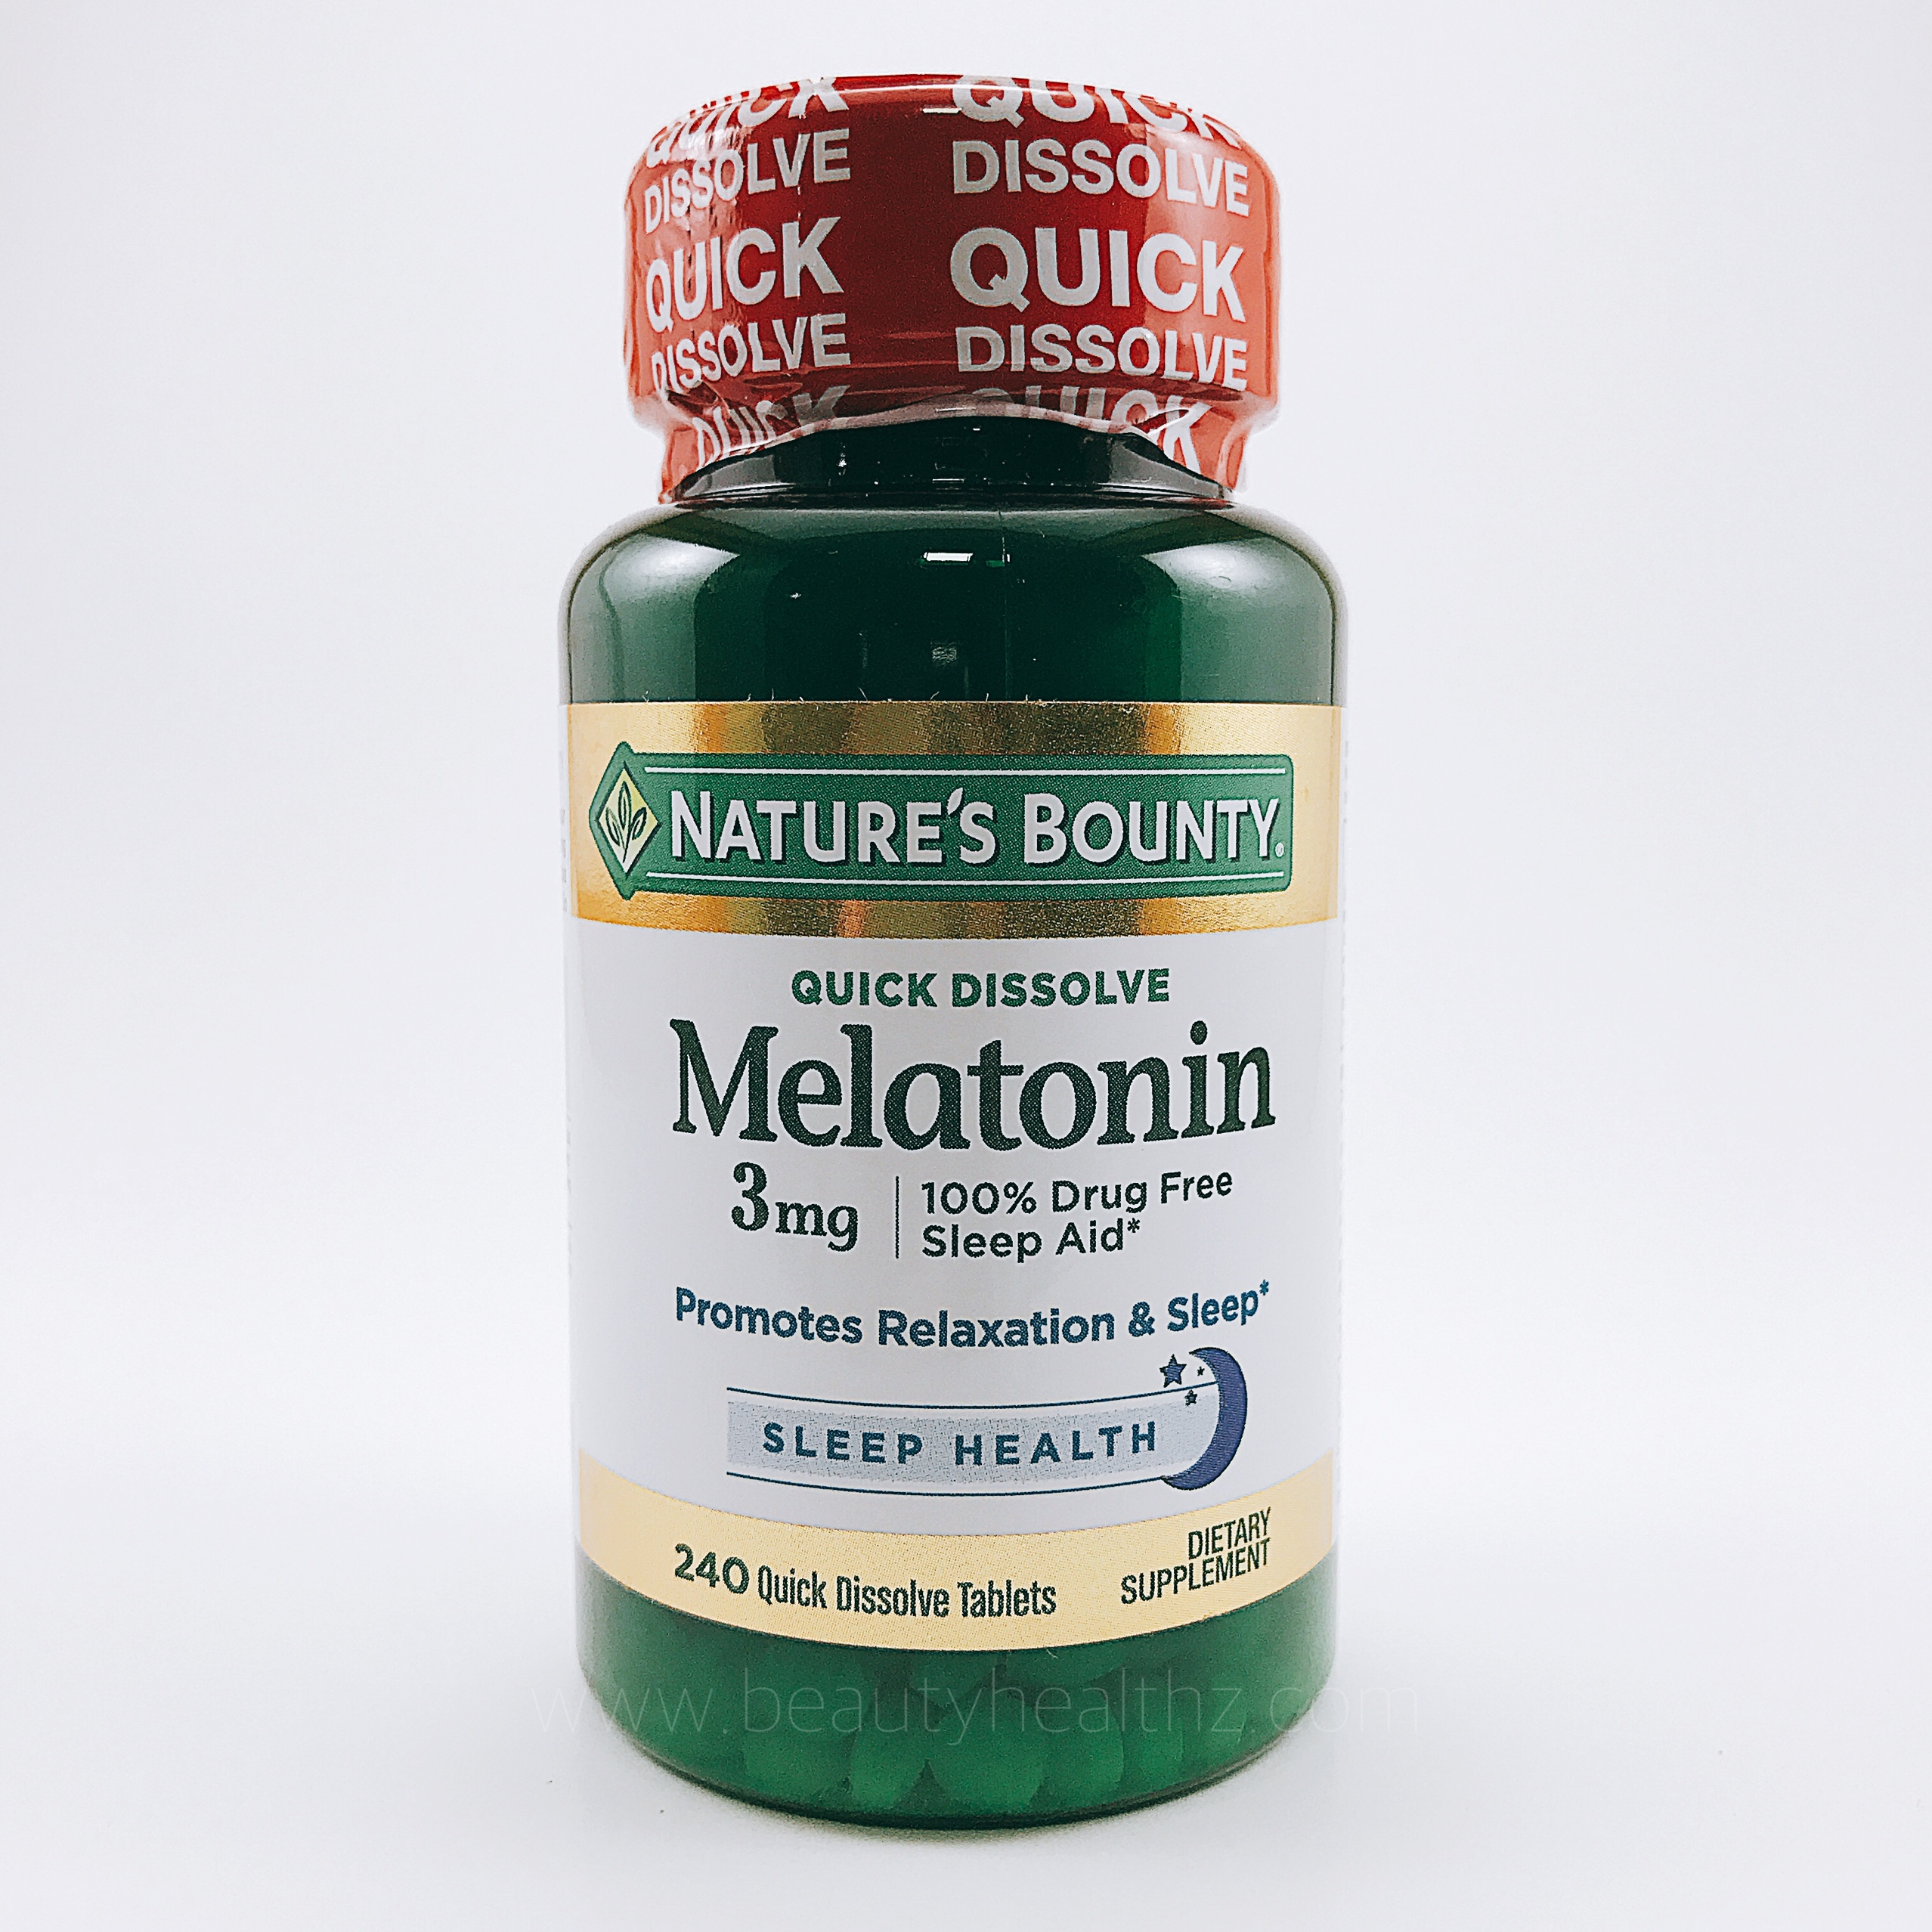 Nature's Bounty, Triple Strength Melatonin, Cherry Flavored, 3 mg, 240 Quick Dissolve Tablets